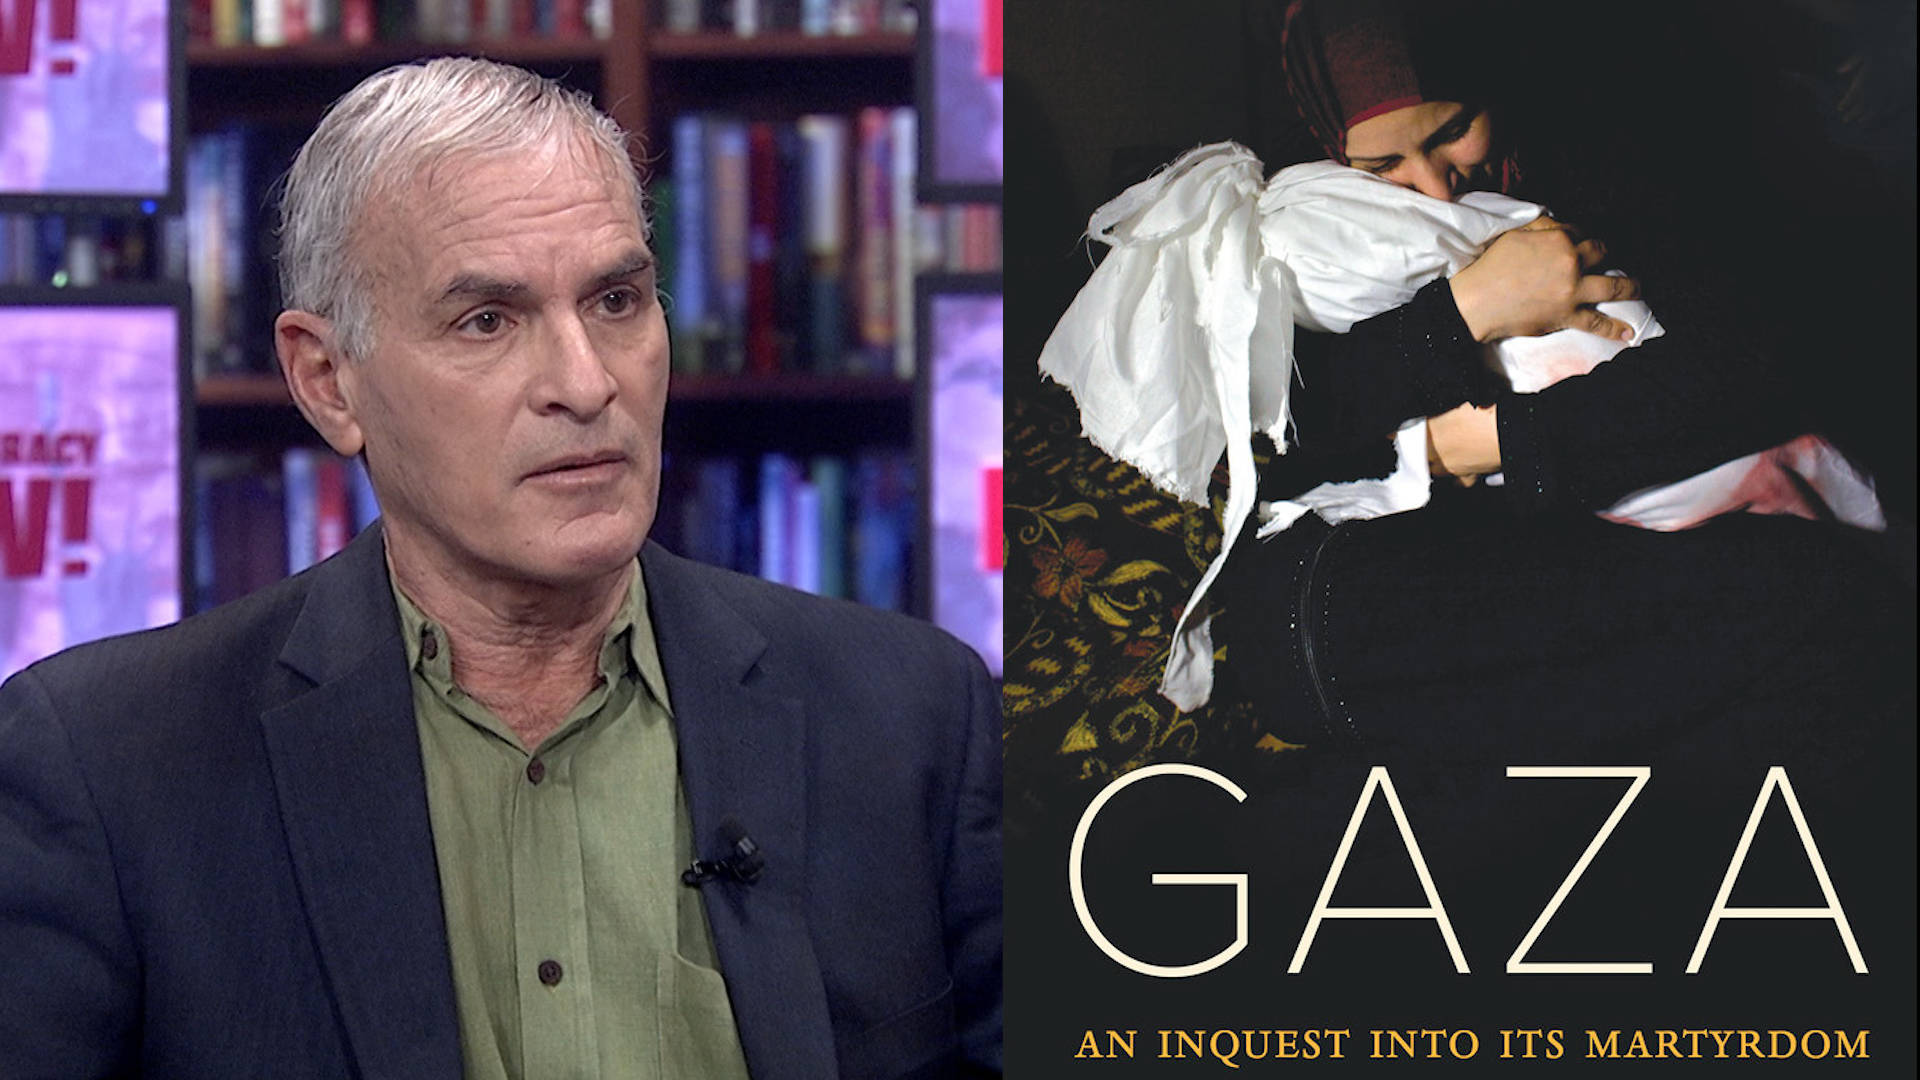 """Gaza: An Inquest into Its Martyrdom"": Norman Finkelstein on the Many Lies Perpetuated About Gaza"